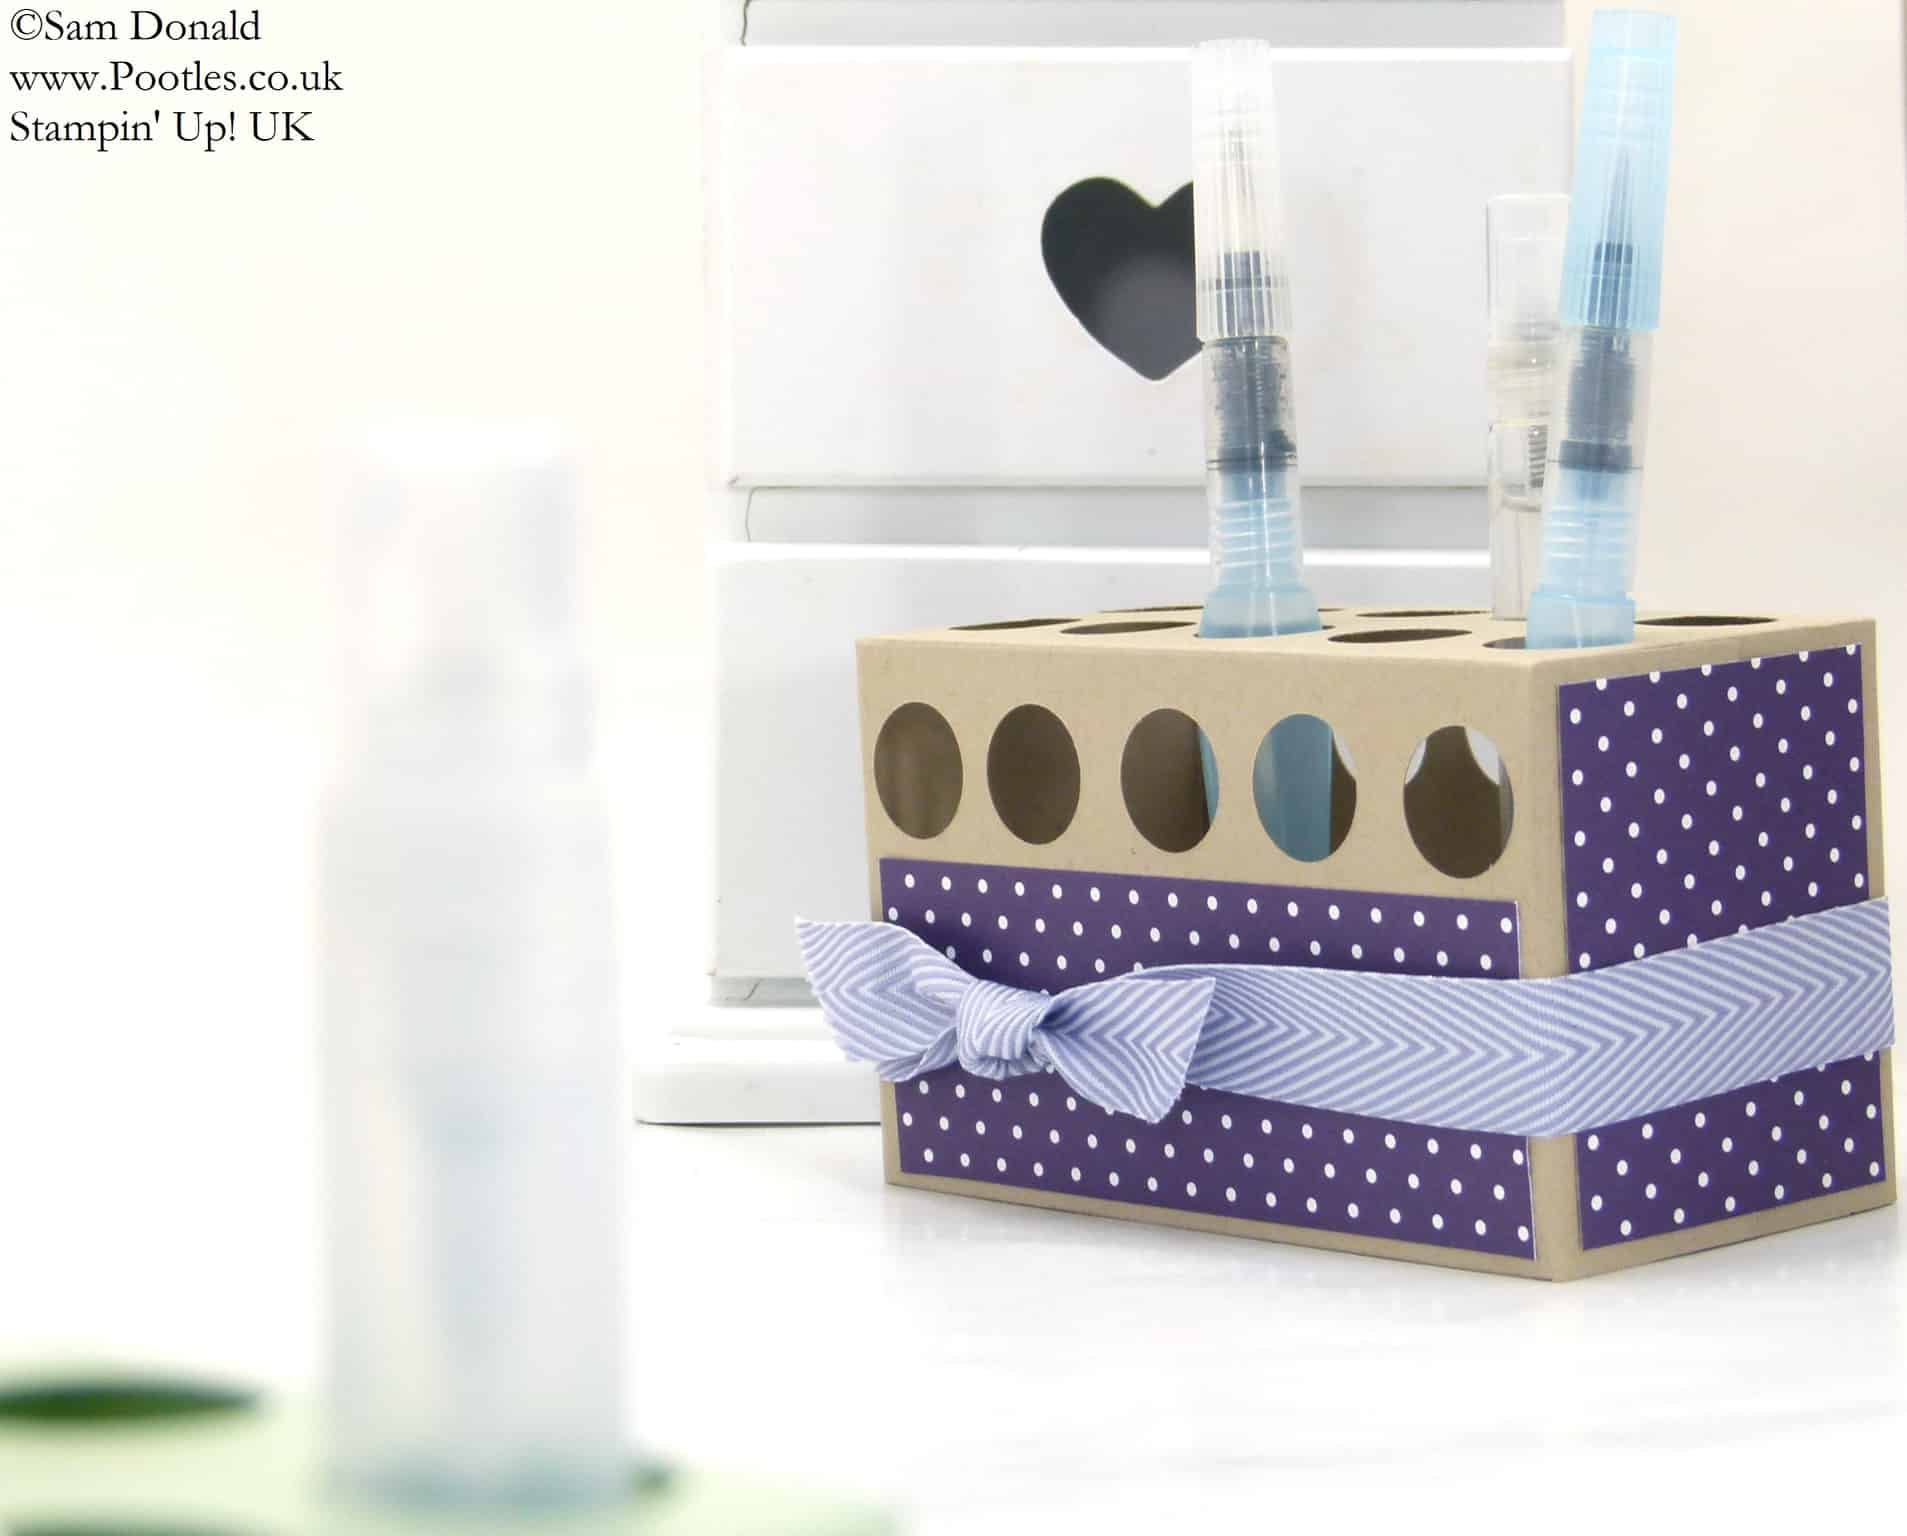 POOTLES Stampin' Up! UK Stampin' Spritzer Holder Tutorial 2